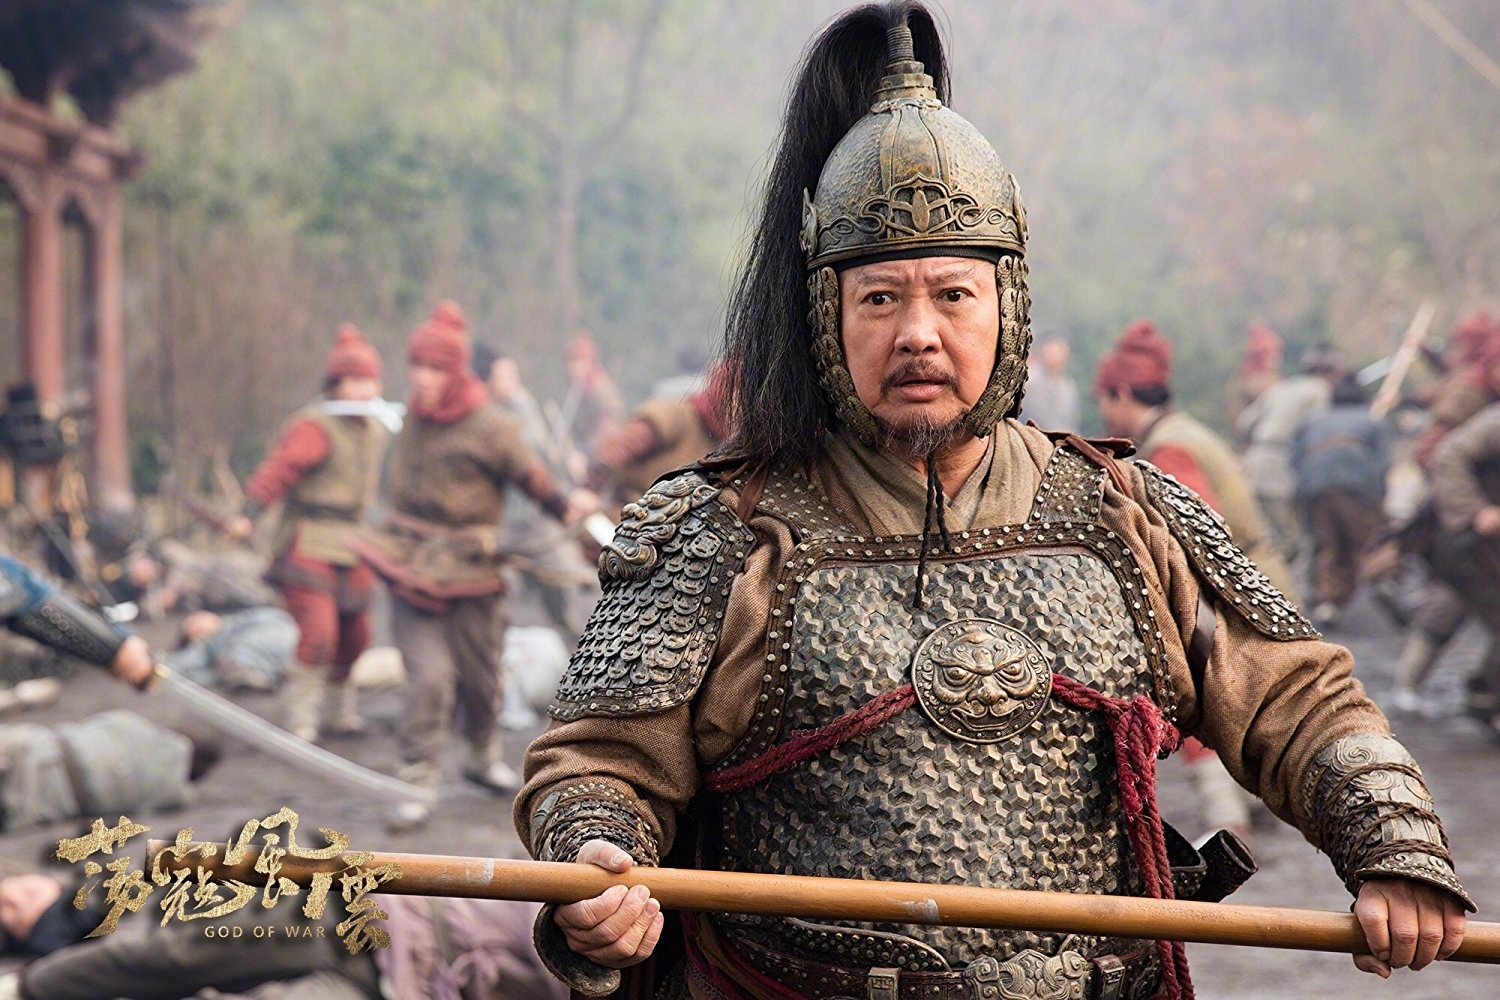 Sammo Hung looks fierce in custom for the movie God of Wars. He is holding a Javelin throw in his hand.